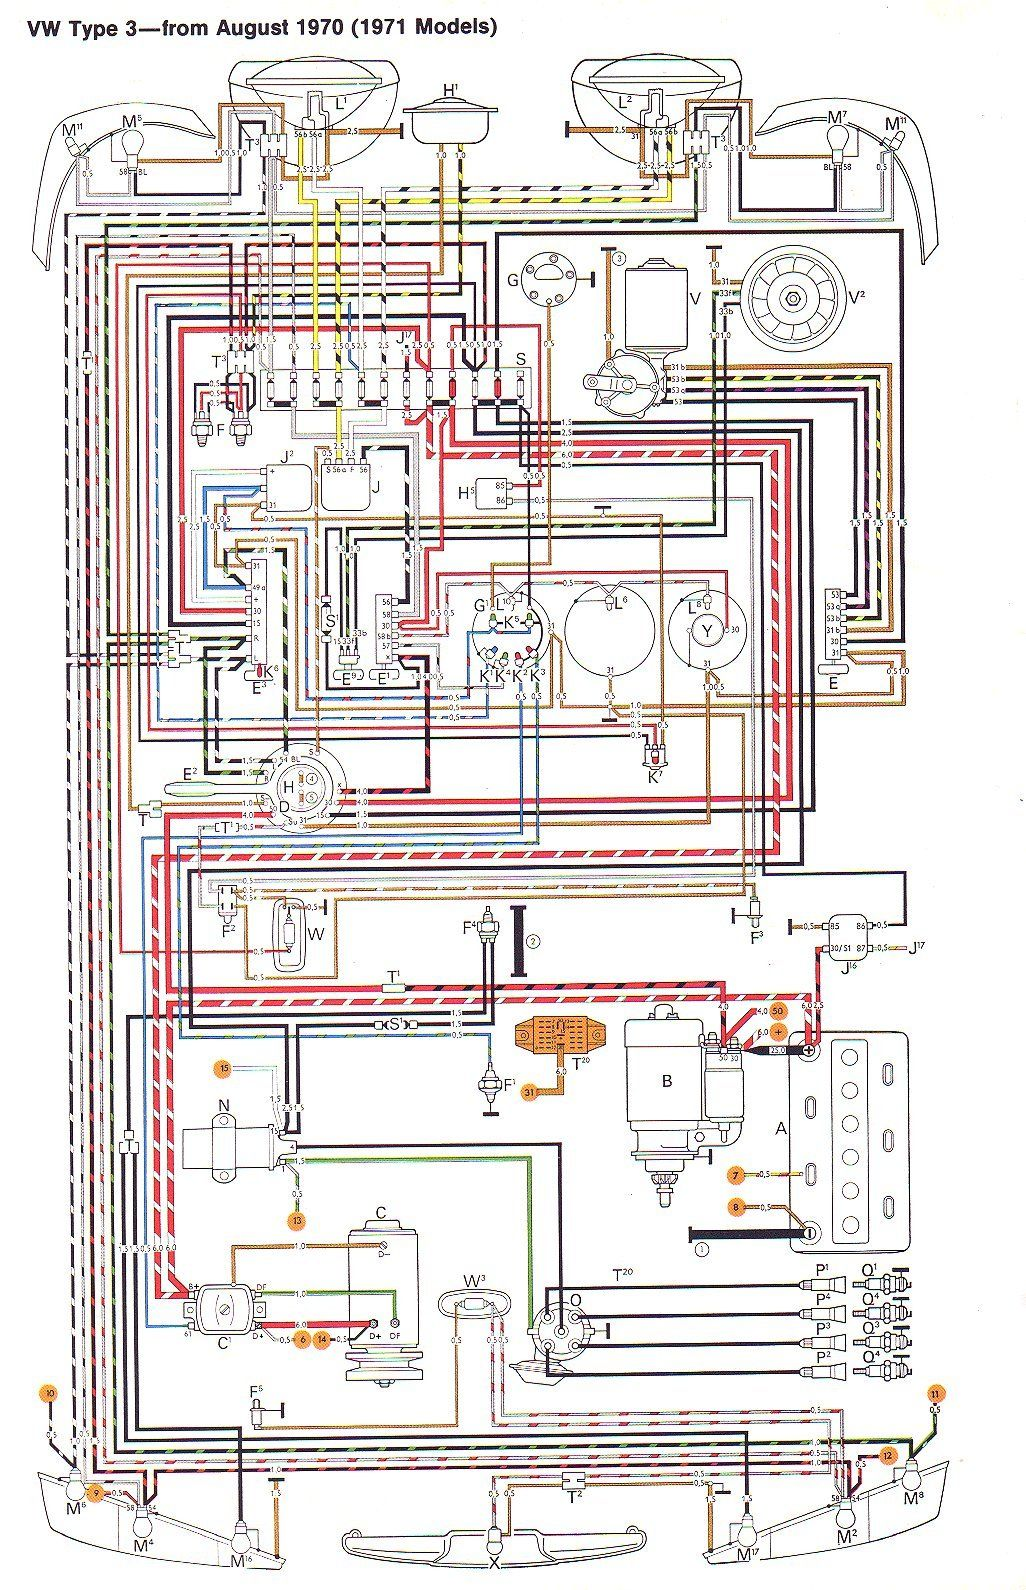 e0db58370f79a63d02d45f00cf63f44a 71 vw t3 wiring diagram ruthie pinterest volkswagen, engine VW Wiring Harness Diagram at edmiracle.co